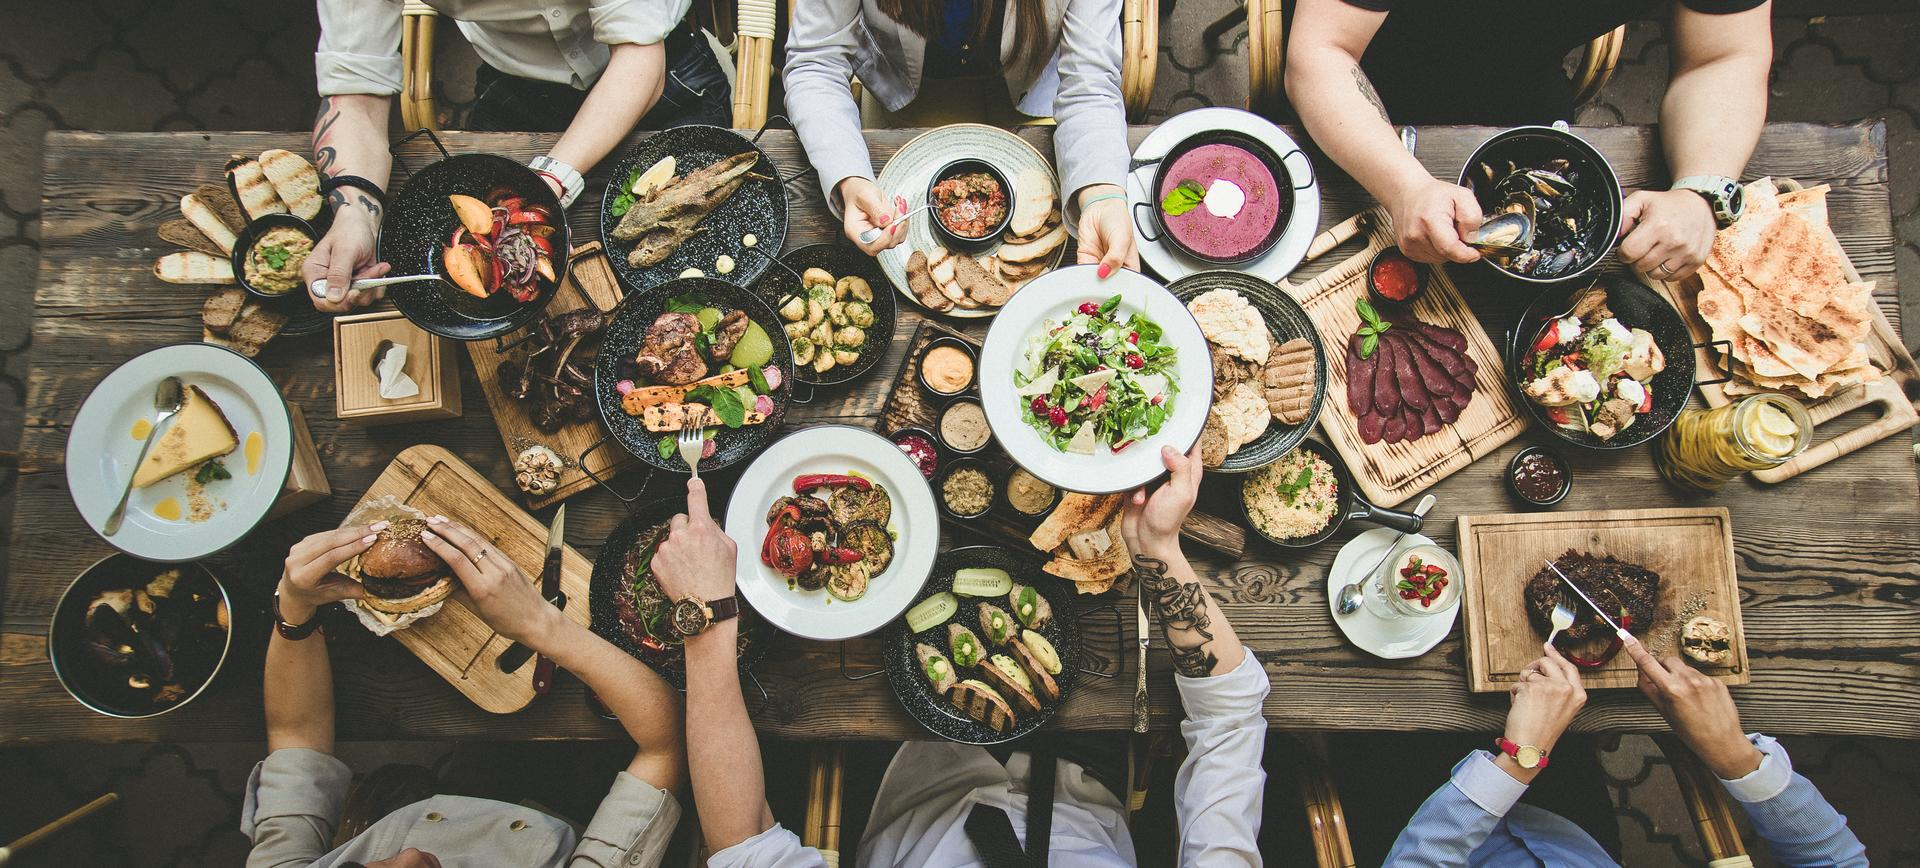 restaurants-directory-table-group-food